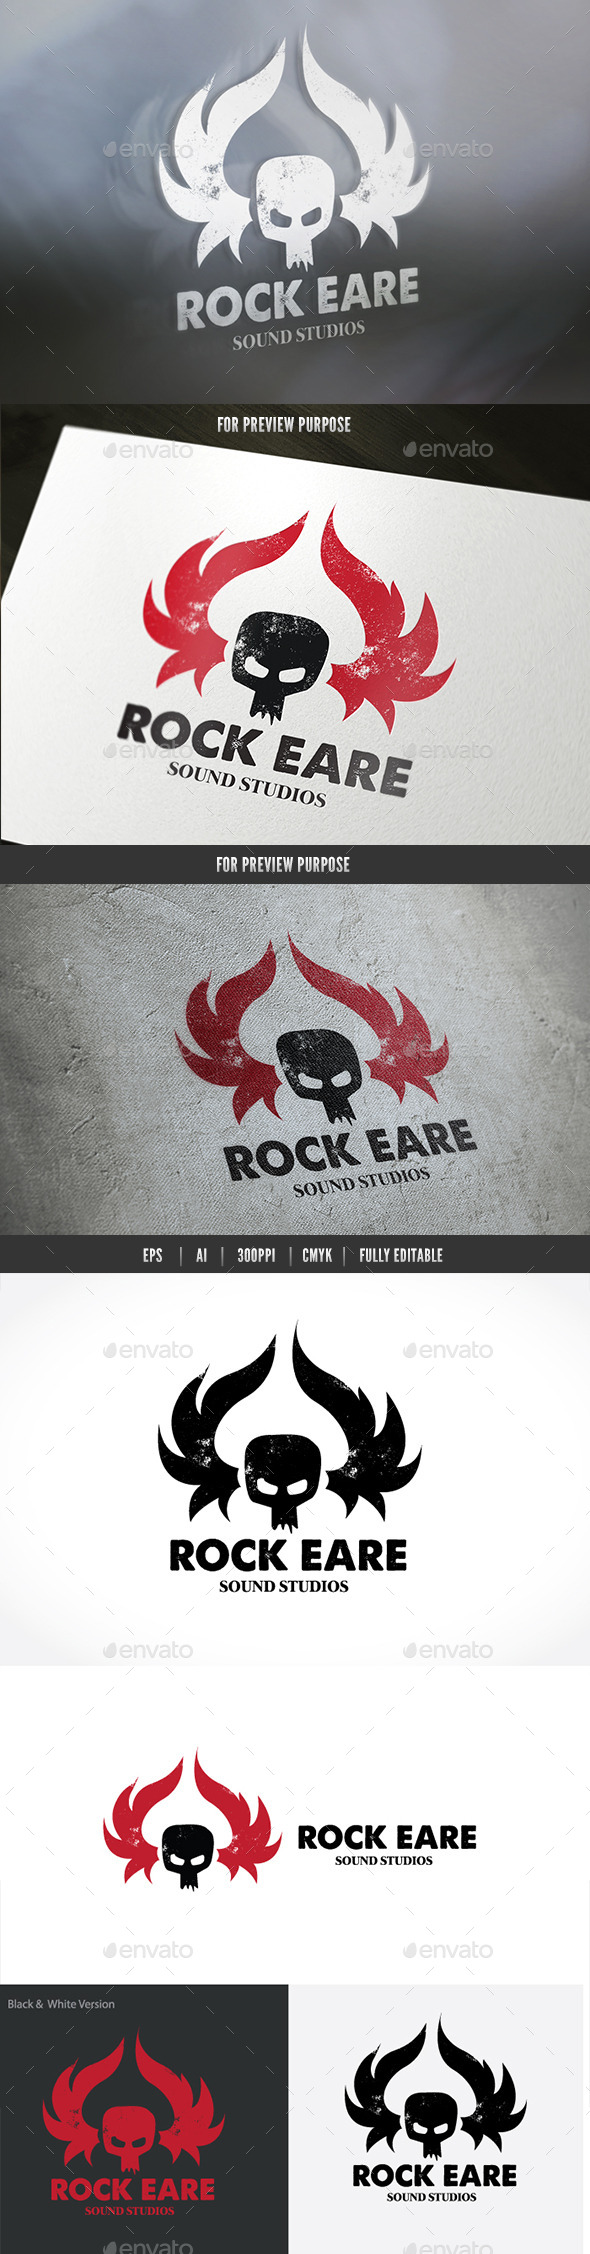 Rock Ear Sound Studio - Humans Logo Templates